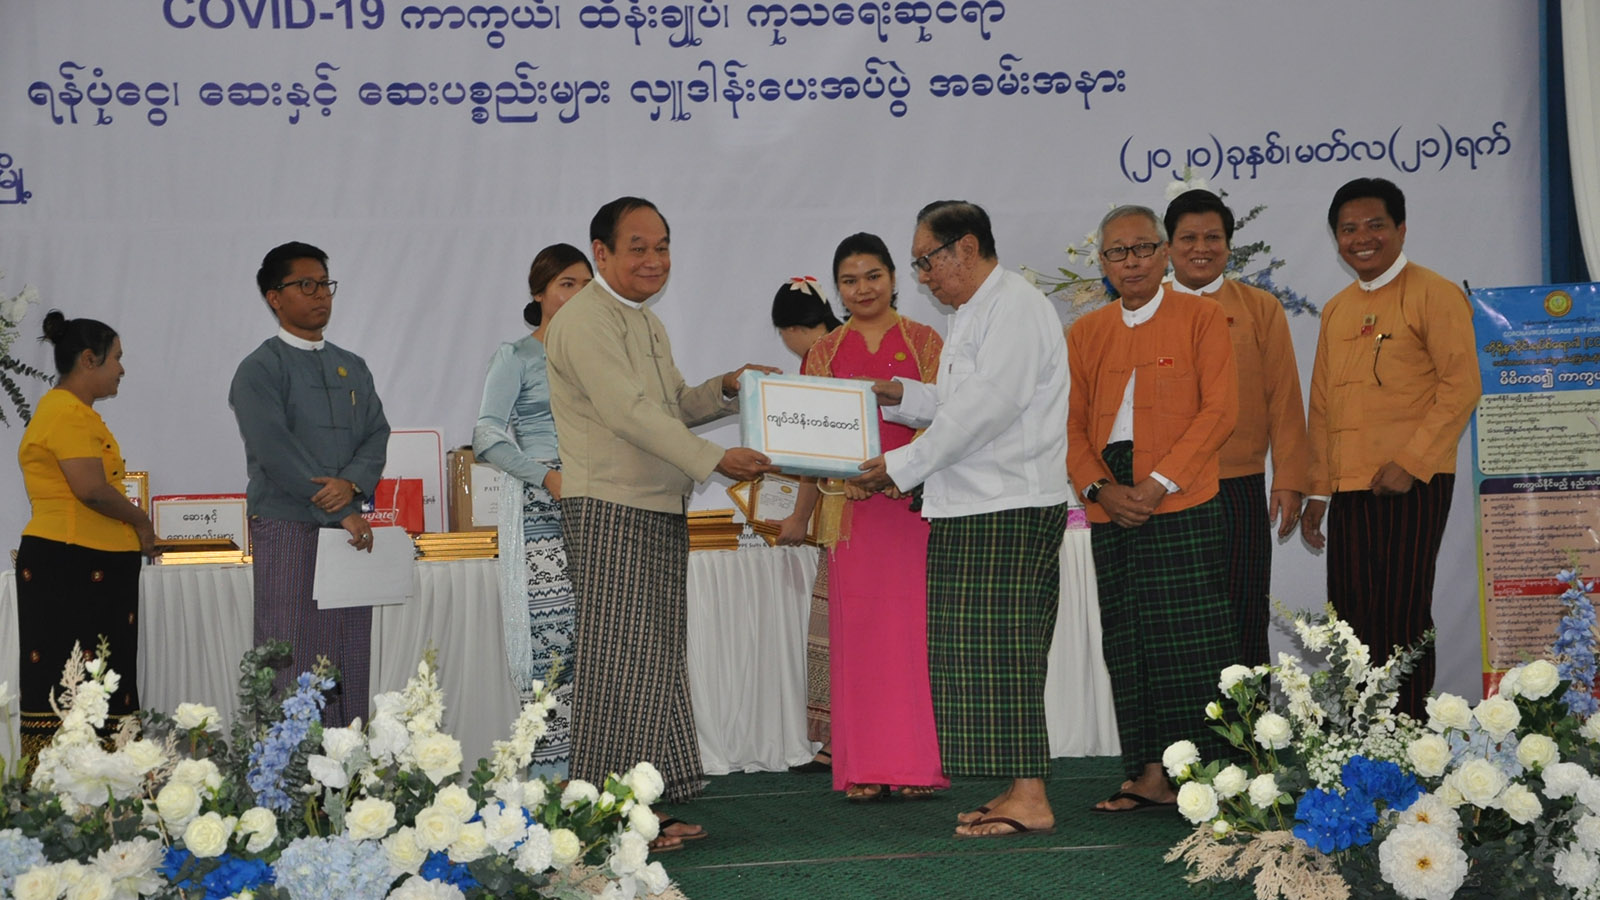 Union Minister Dr Myint Htwe receives the cash donation for Central Committee on Prevention, Control and Treatment of 2019 Novel Coronavirus and the Ministry of Health and Sports yesterday.  Photo: MNA